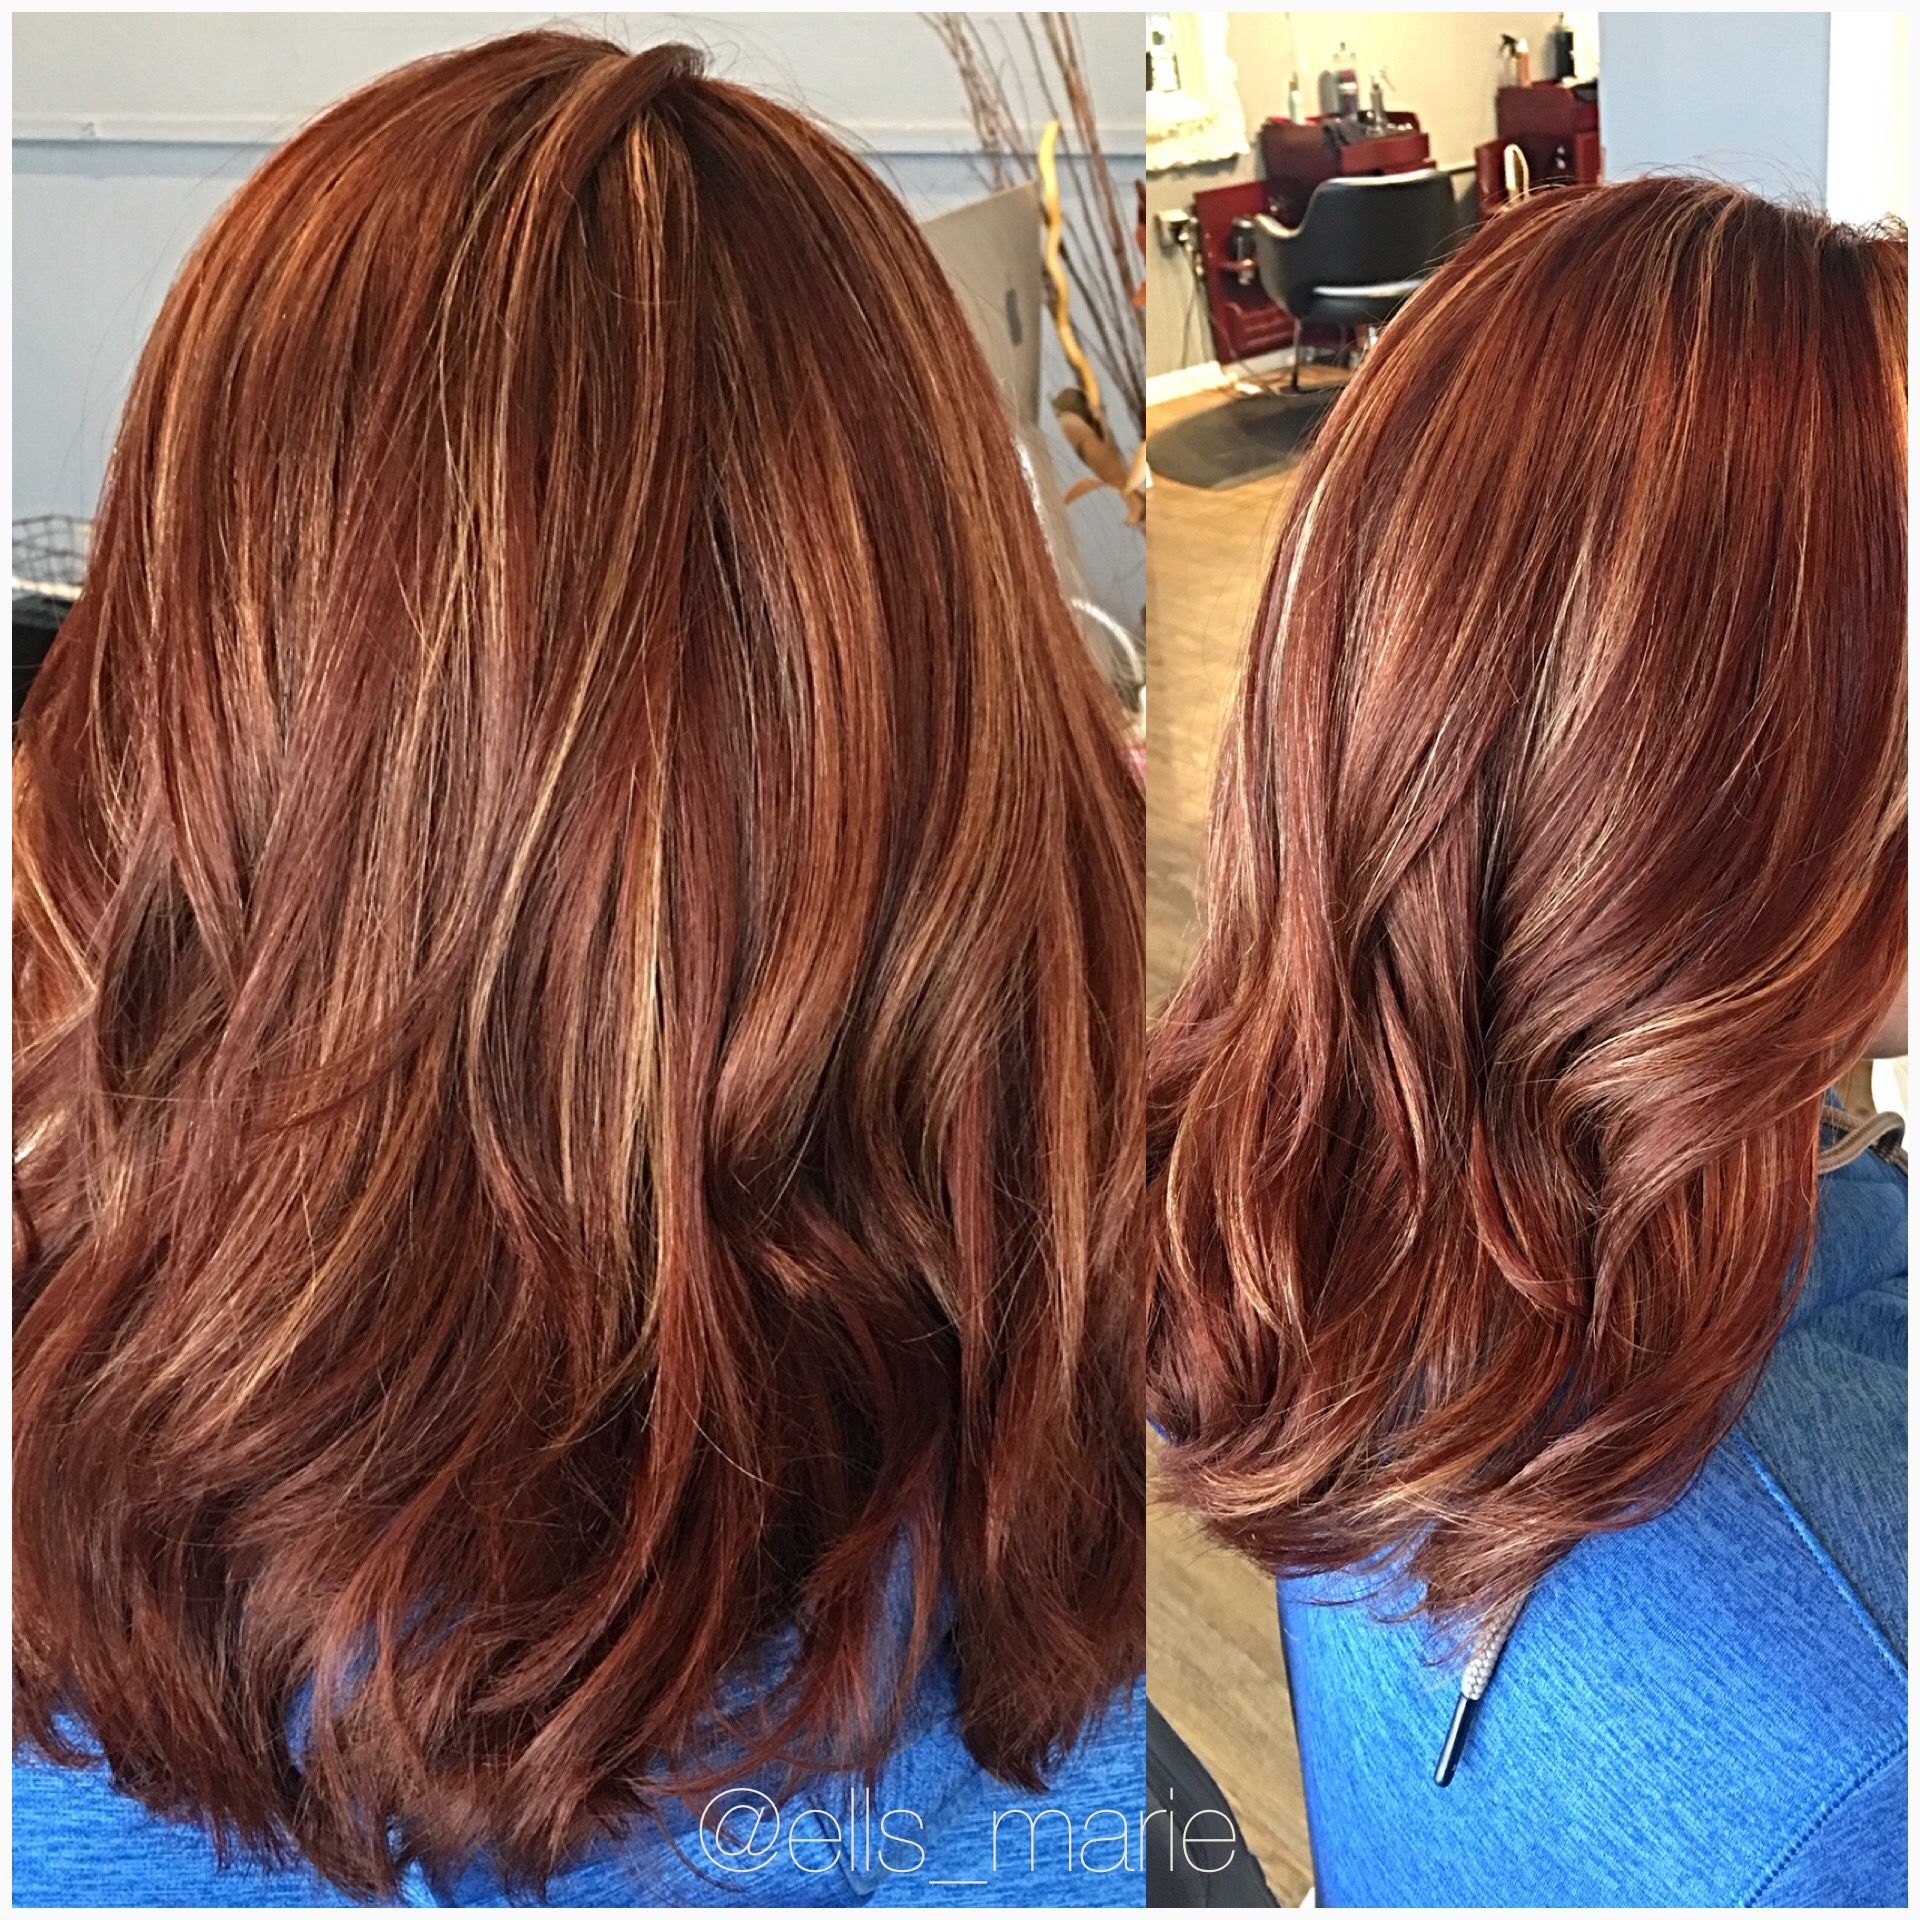 Red Copper Blonde Highlights Hair Color Auburn Hair Color Highlights Hair Styles